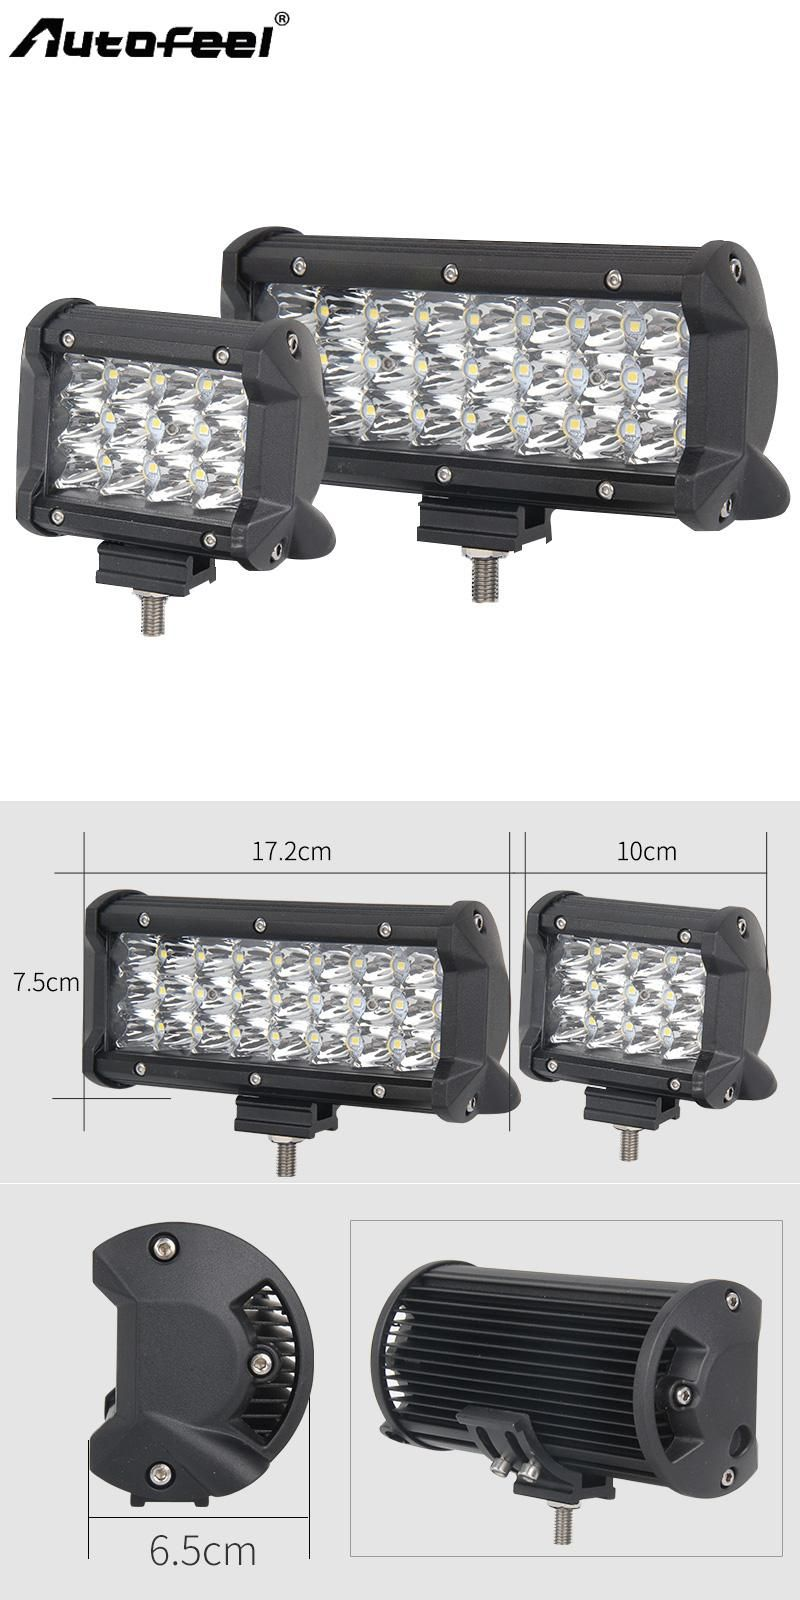 Autofeel Triple Rows Led Car Light Bar 4 7 Straight Work Light 72w Large Led Chips Offroad Spot Beams Black Friday 6000k Bar Lighting Car Lights Work Lights